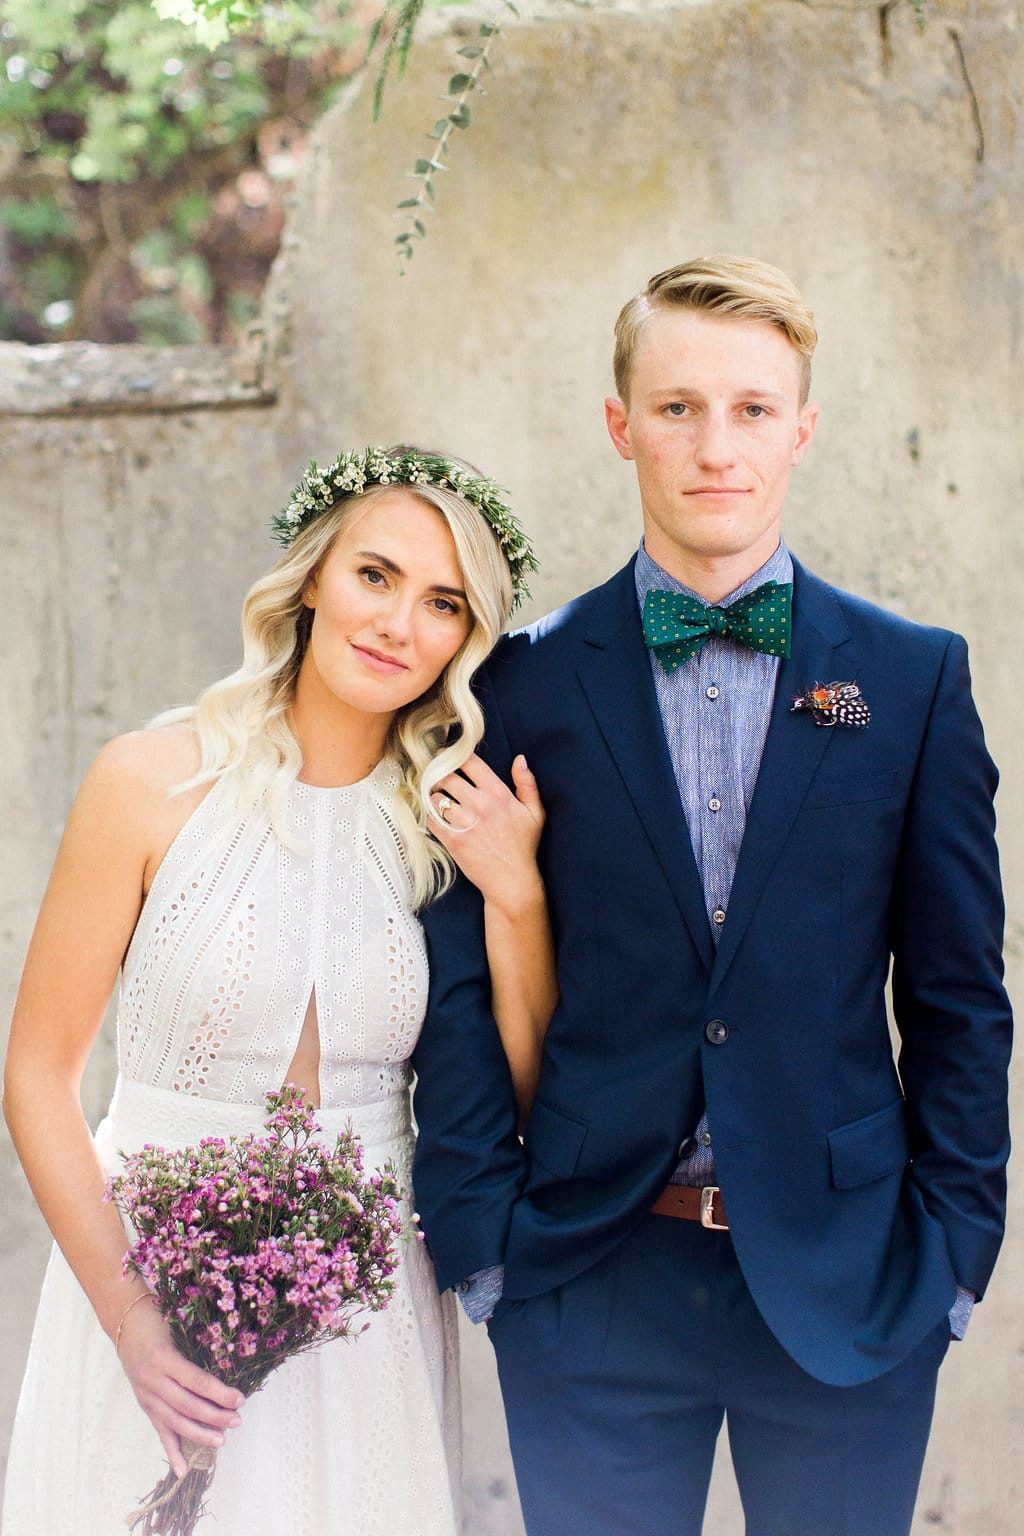 Eyelet Lace Wedding Gown in Utah Canyon Wedding - Midgley bride is wearing Nicole by Sottero and Midgley